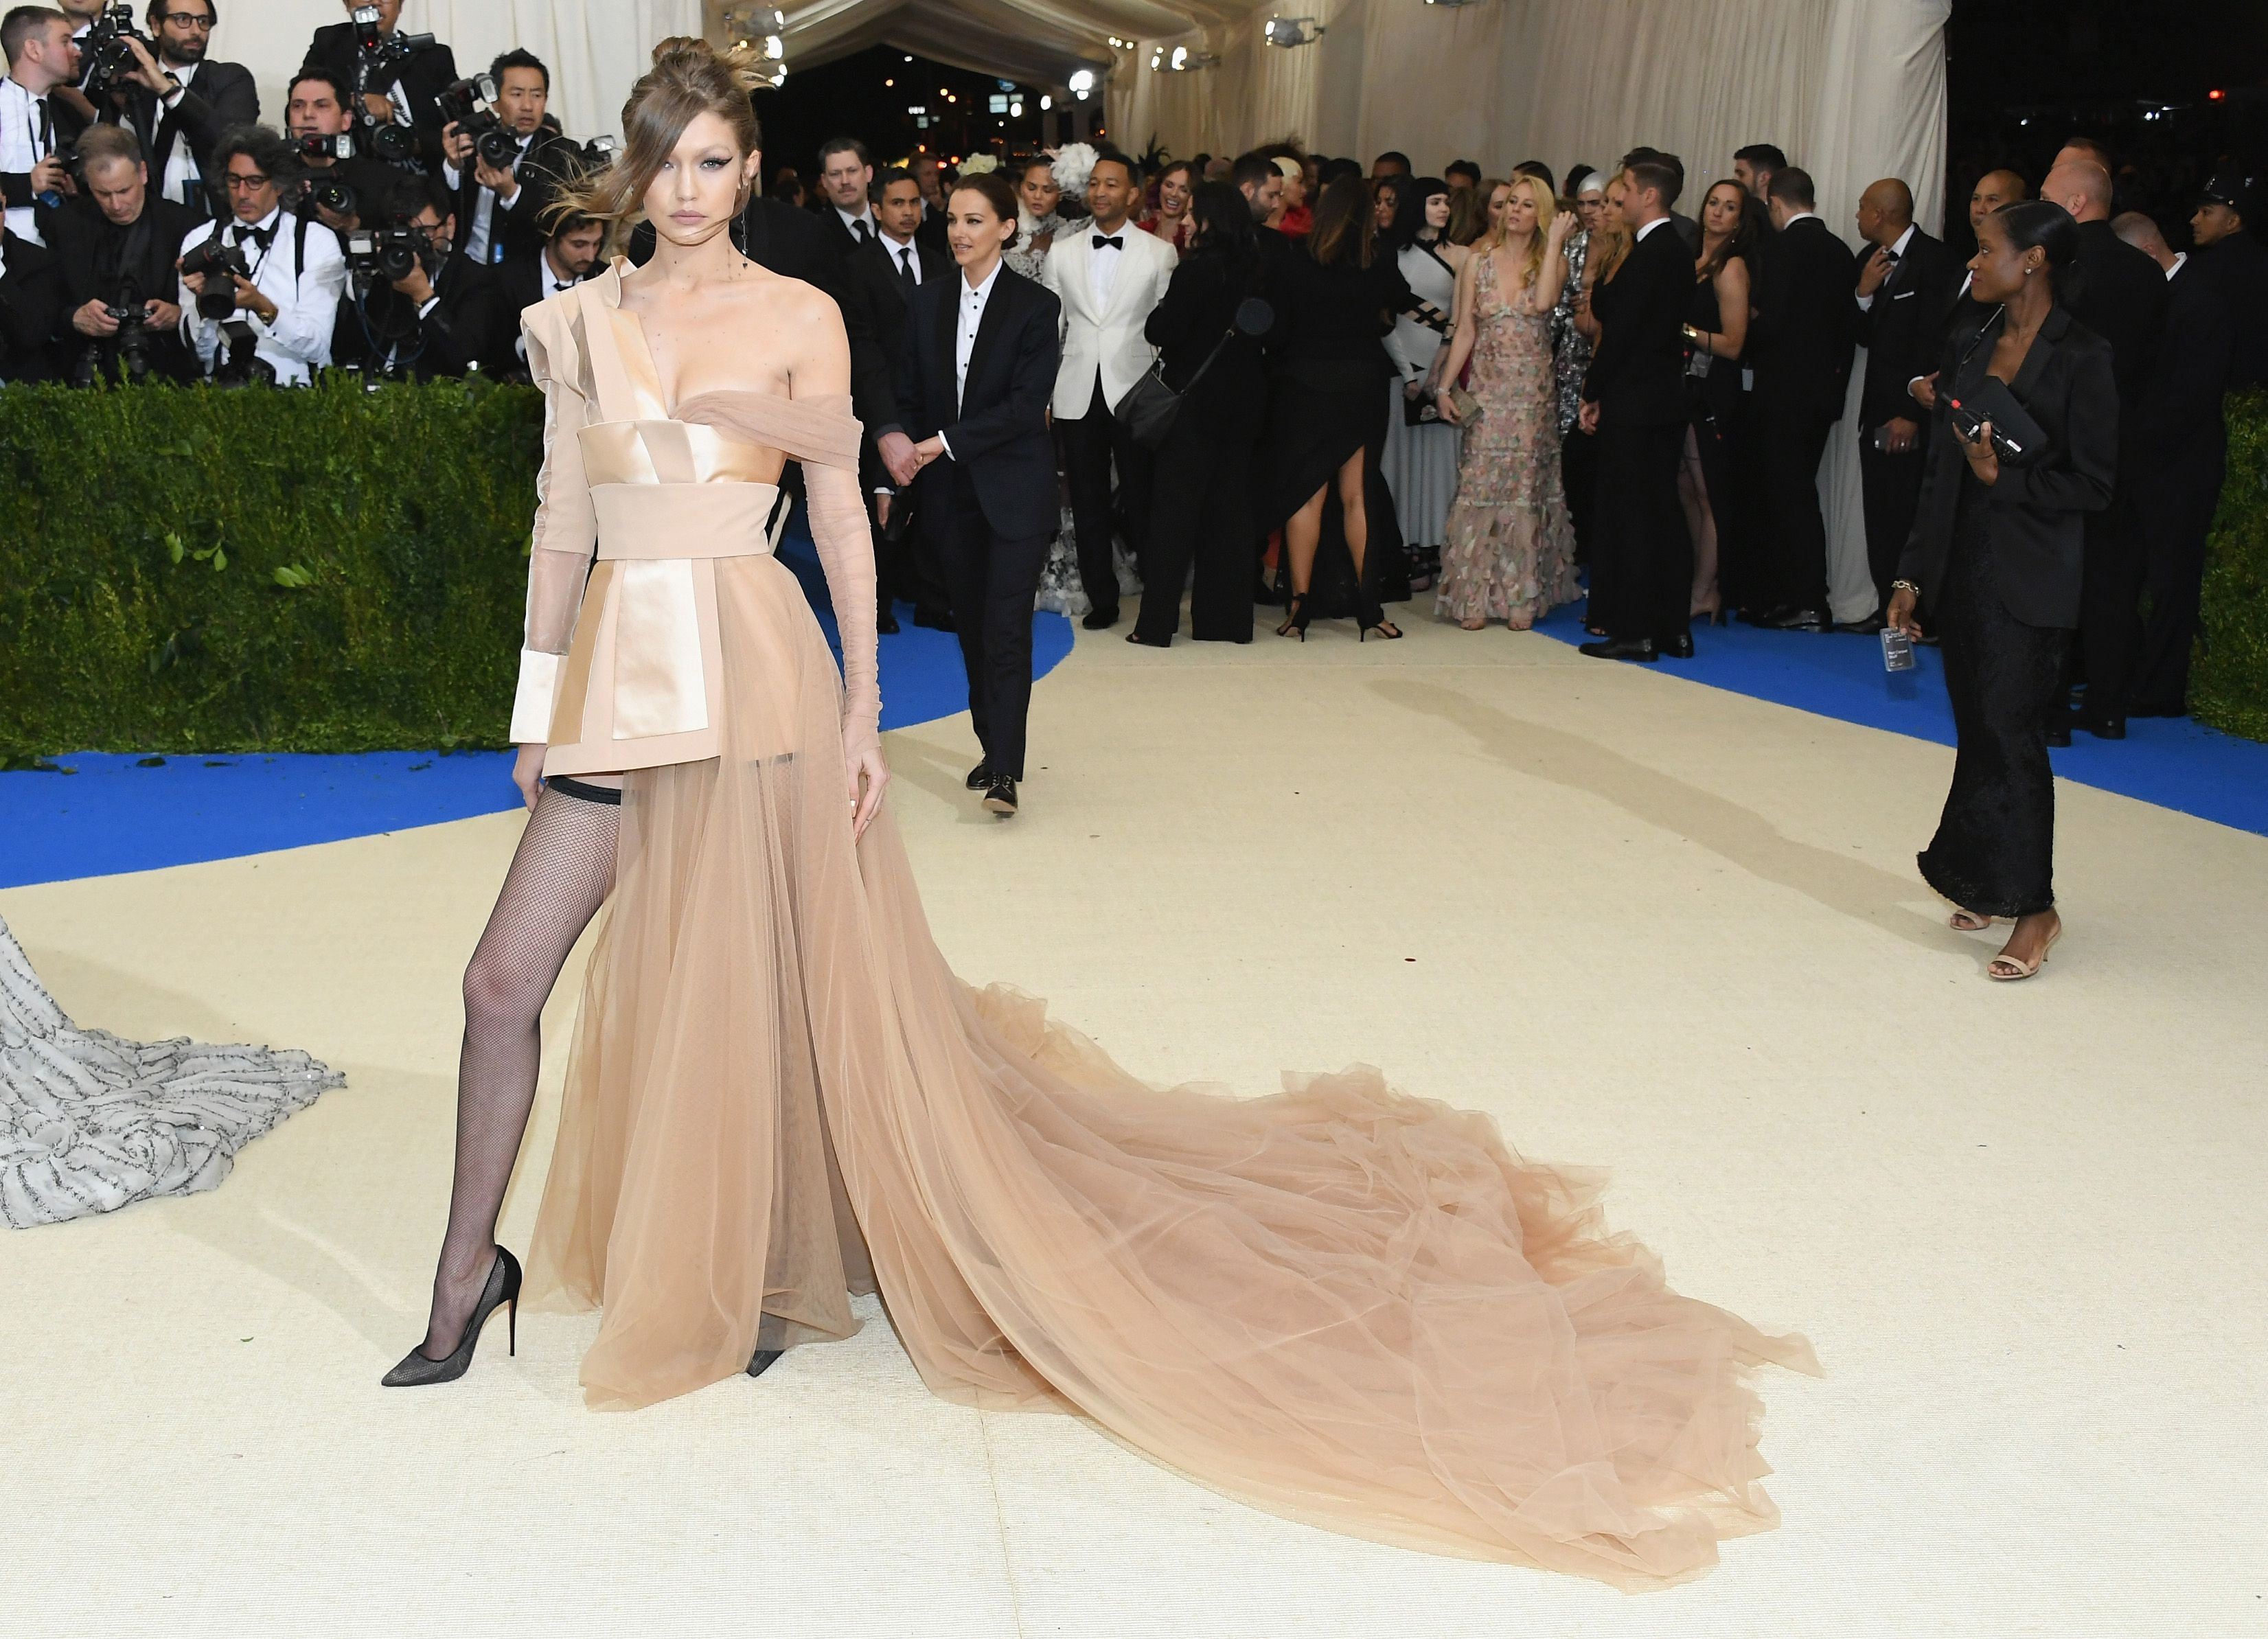 Gigi Hadid with a sensational look from Tom Hilfiger at Met Gala 2017 in red carpet